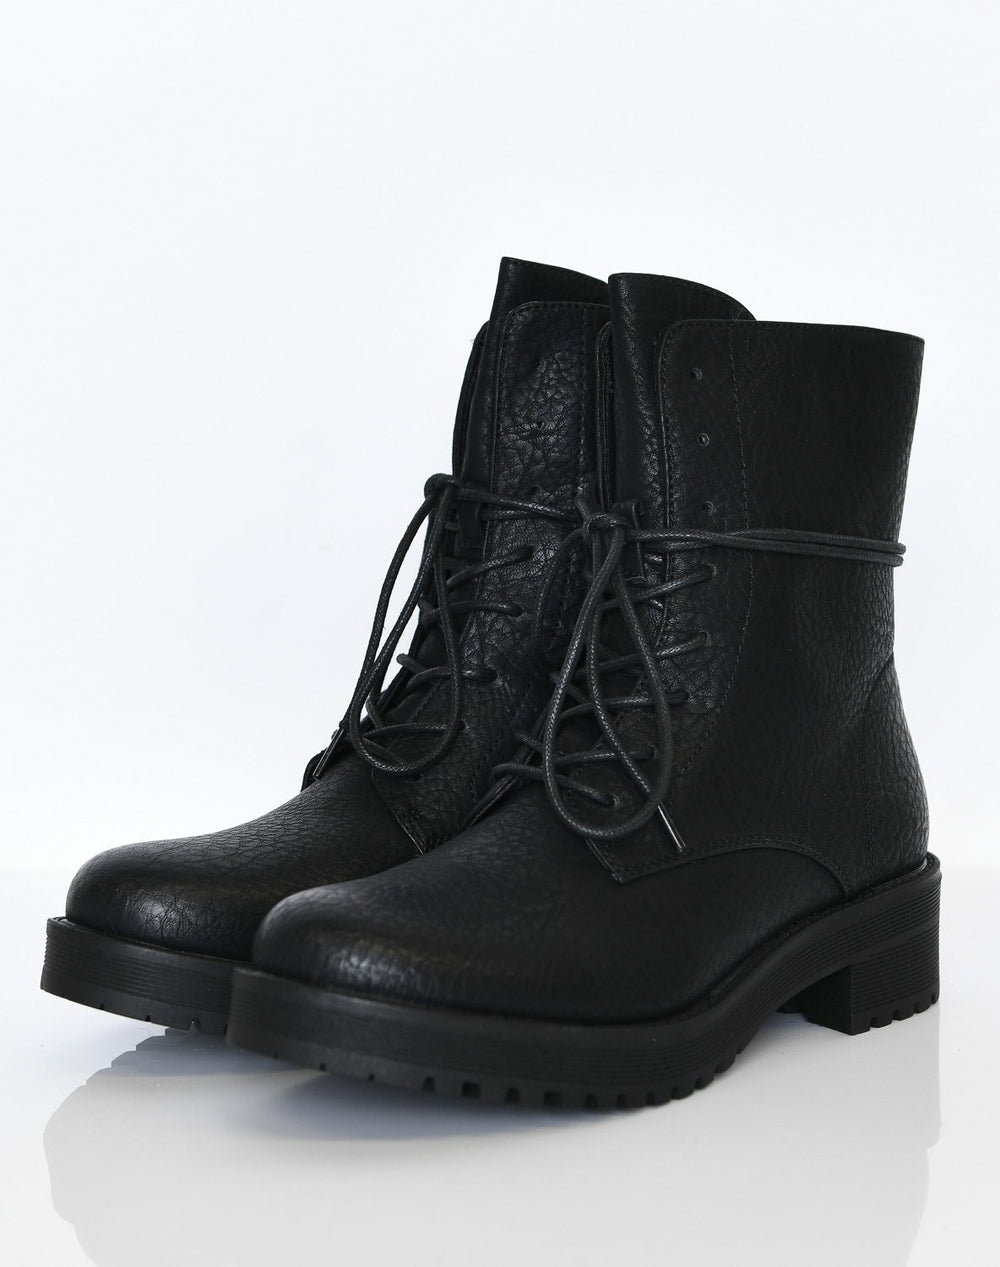 Nicolina boots black - Online-Mode